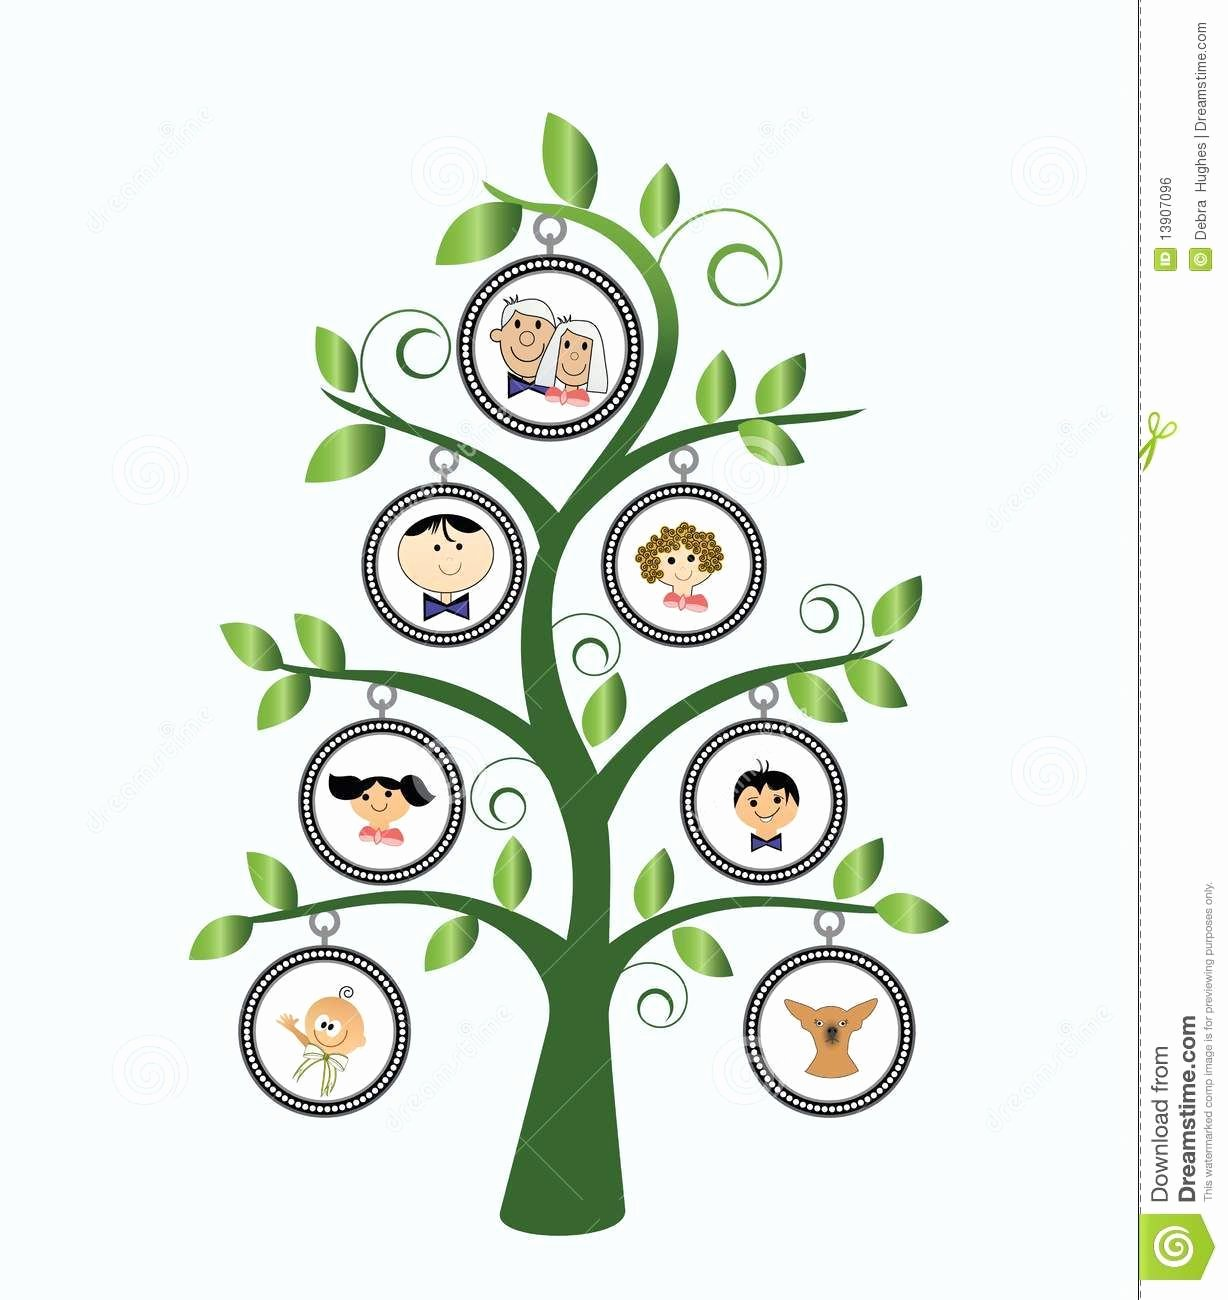 Family Tree Examples Images Unique Family Tree Images Google Search Ffd Ideas